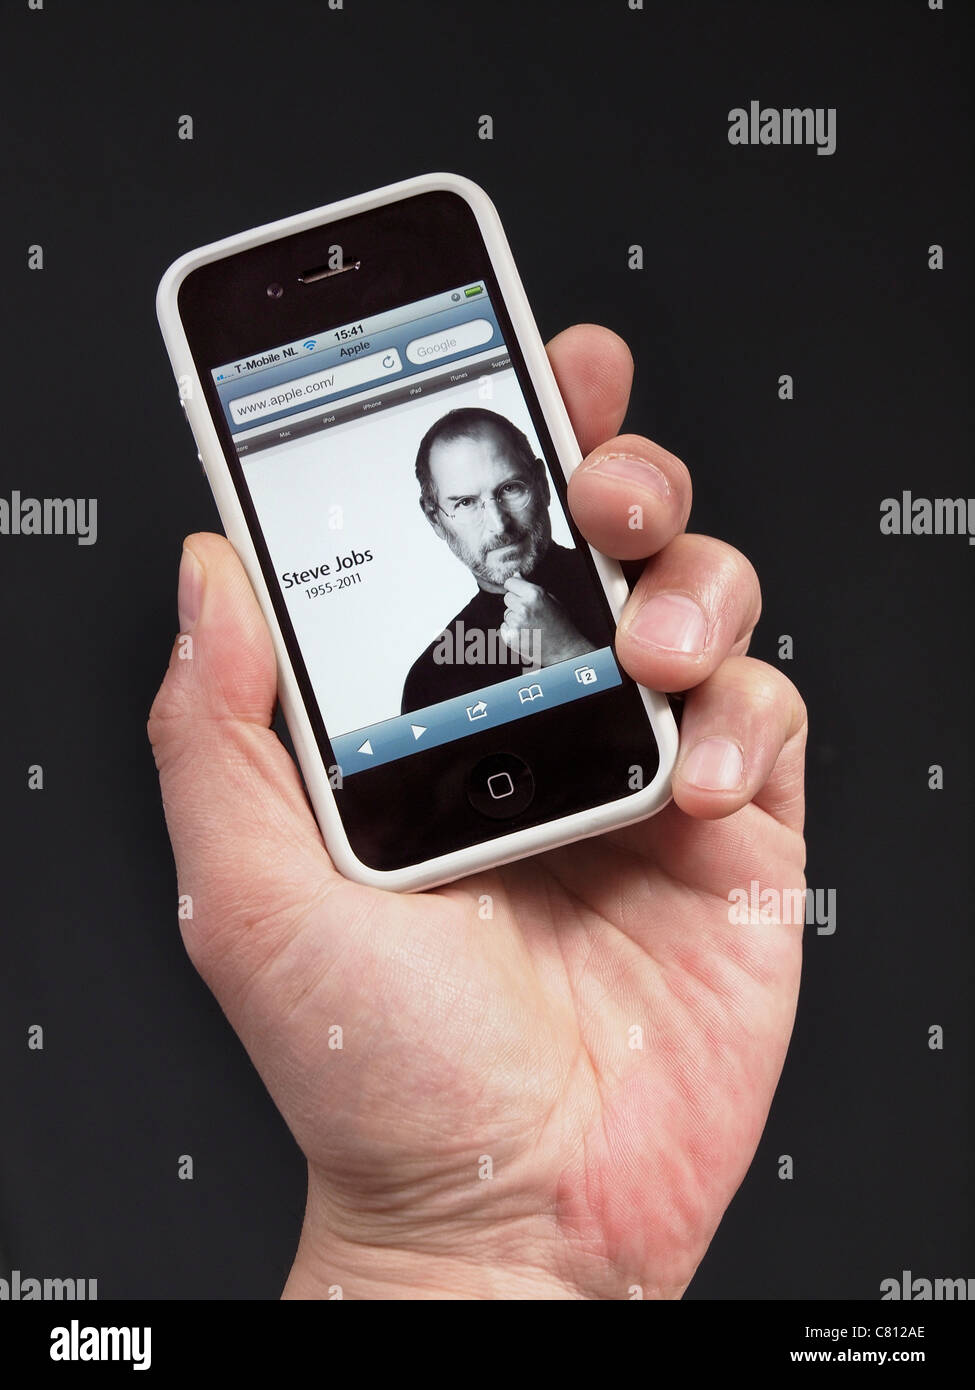 Apple homepage with Steve Jobs in memoriam on the day he died, shown on an iPhone 4 in hand. - Stock Image